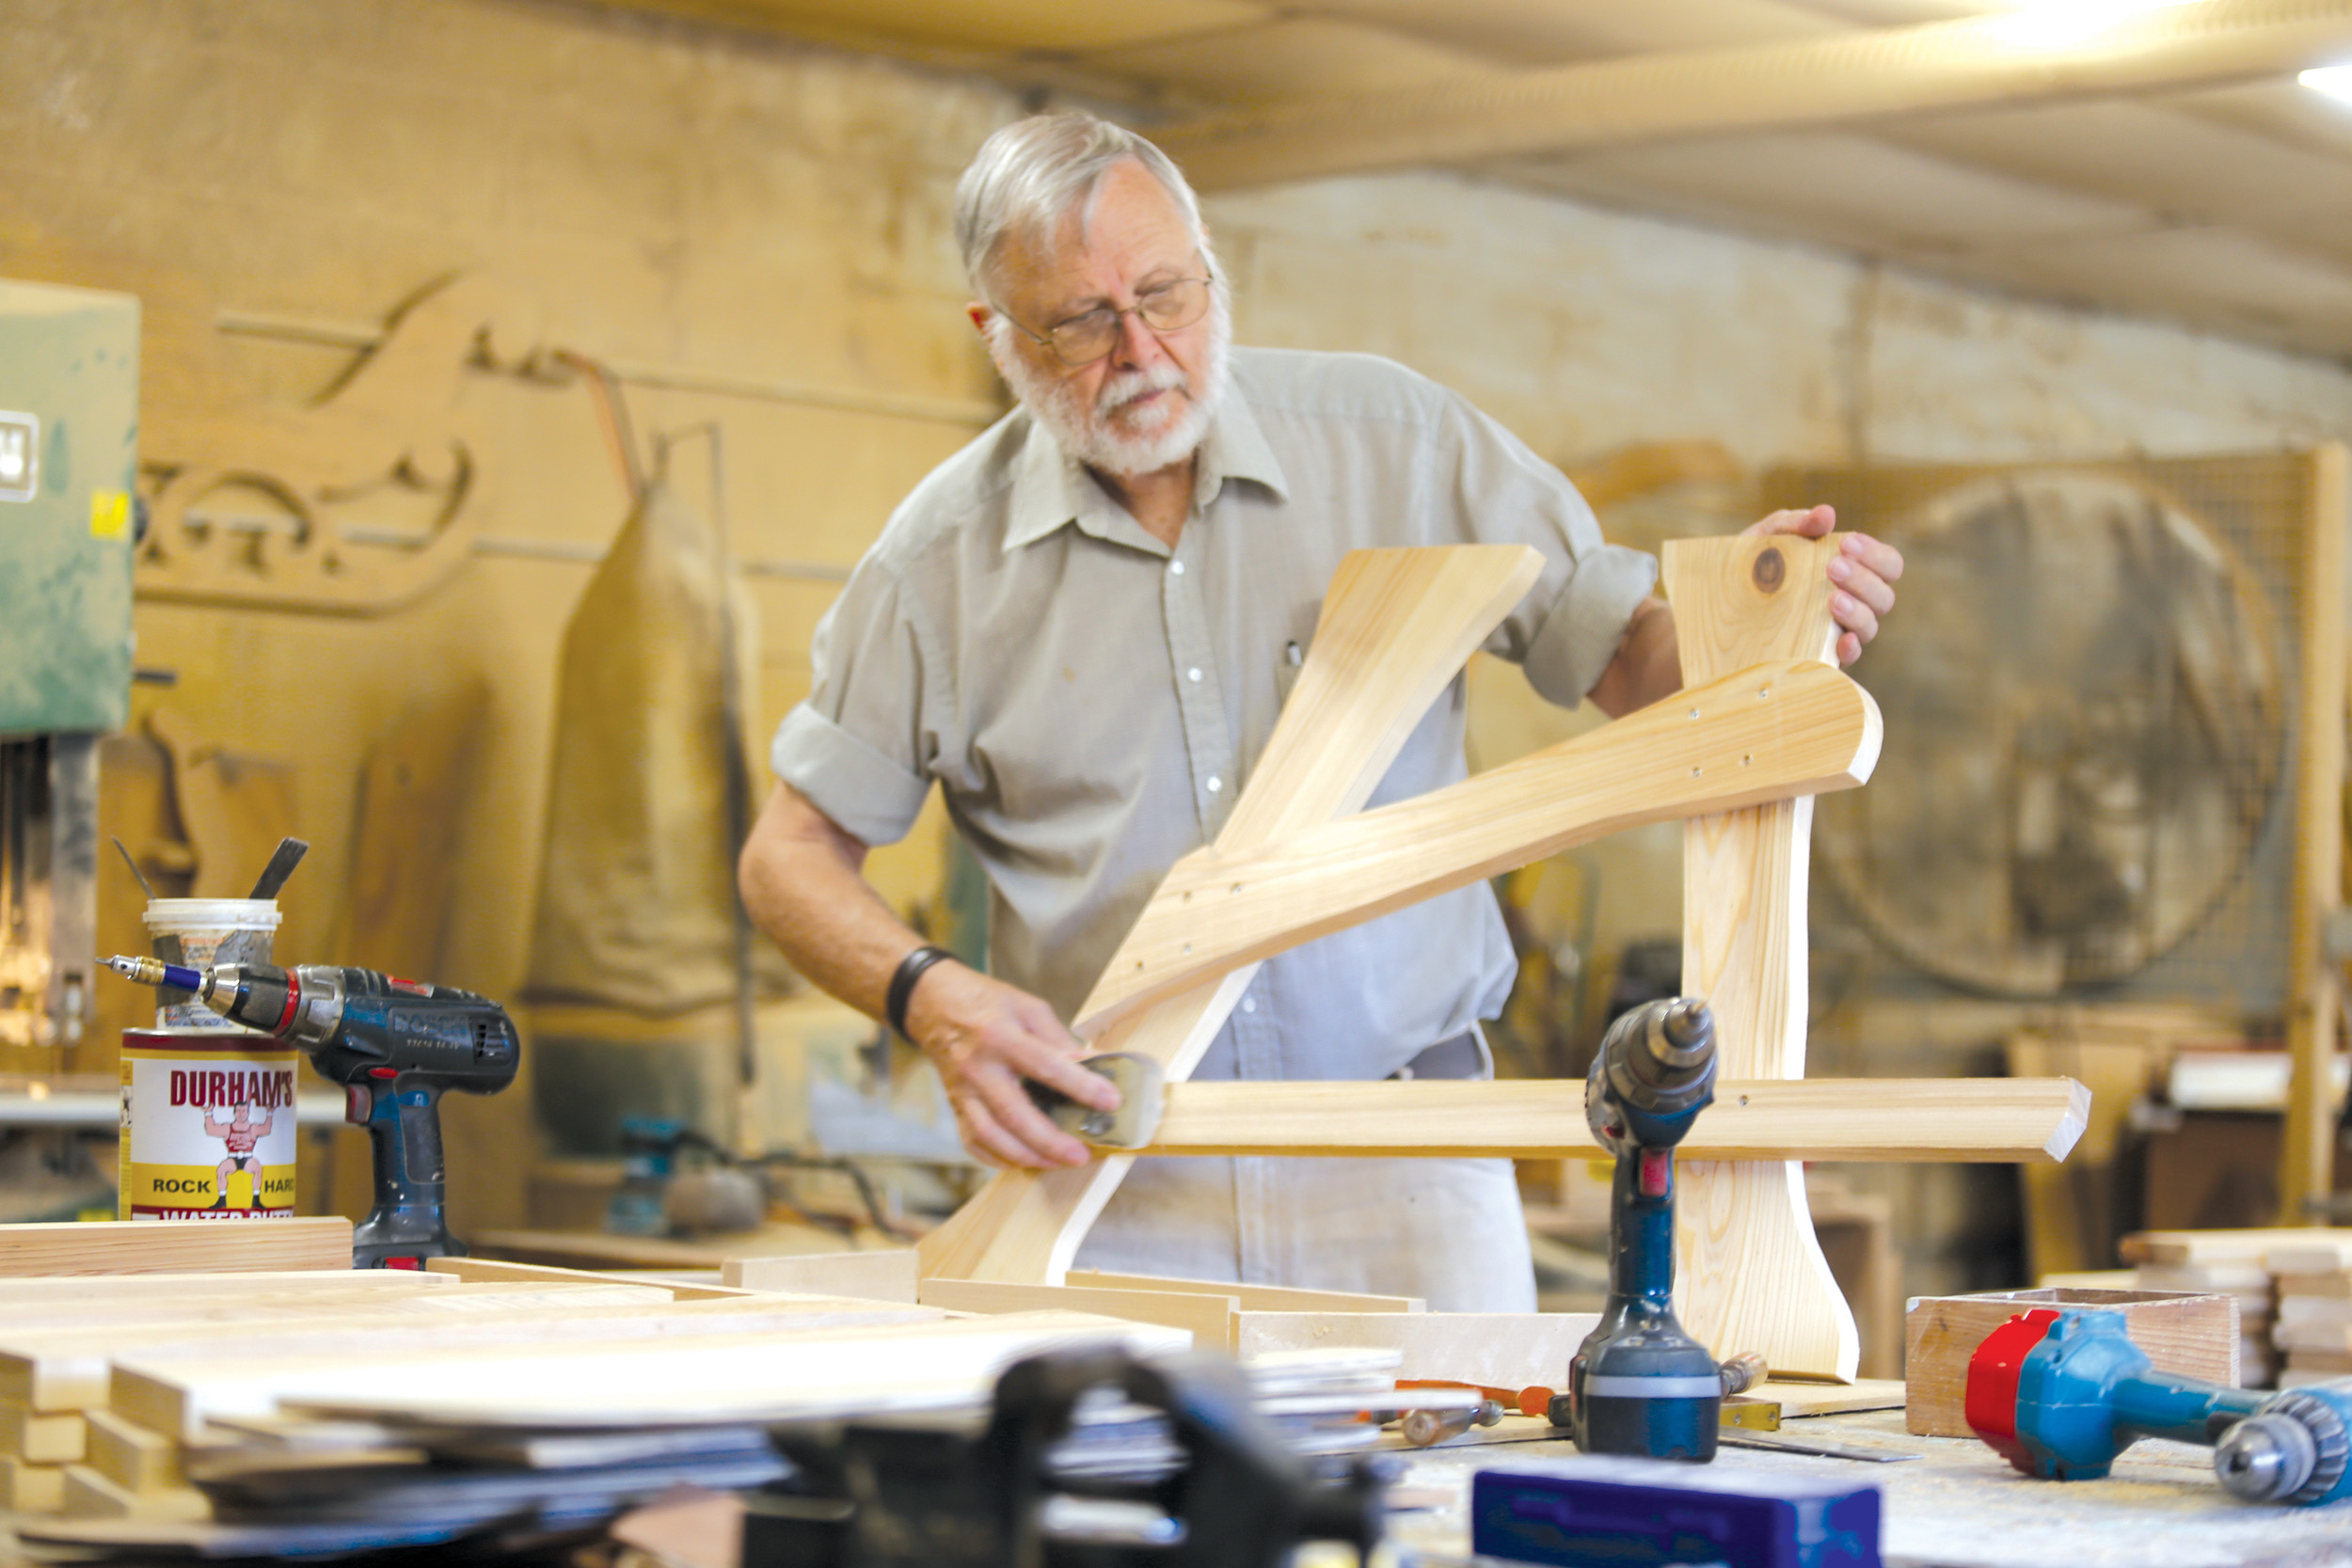 BRUCE MILLS / THE SUMTER ITEMDick Dabbs sands the legs to a chair at Crossroads Workshop recently. Dabbs constructs and sells mostly swings, rockers and Adirondack chairs at his Mayesville business.